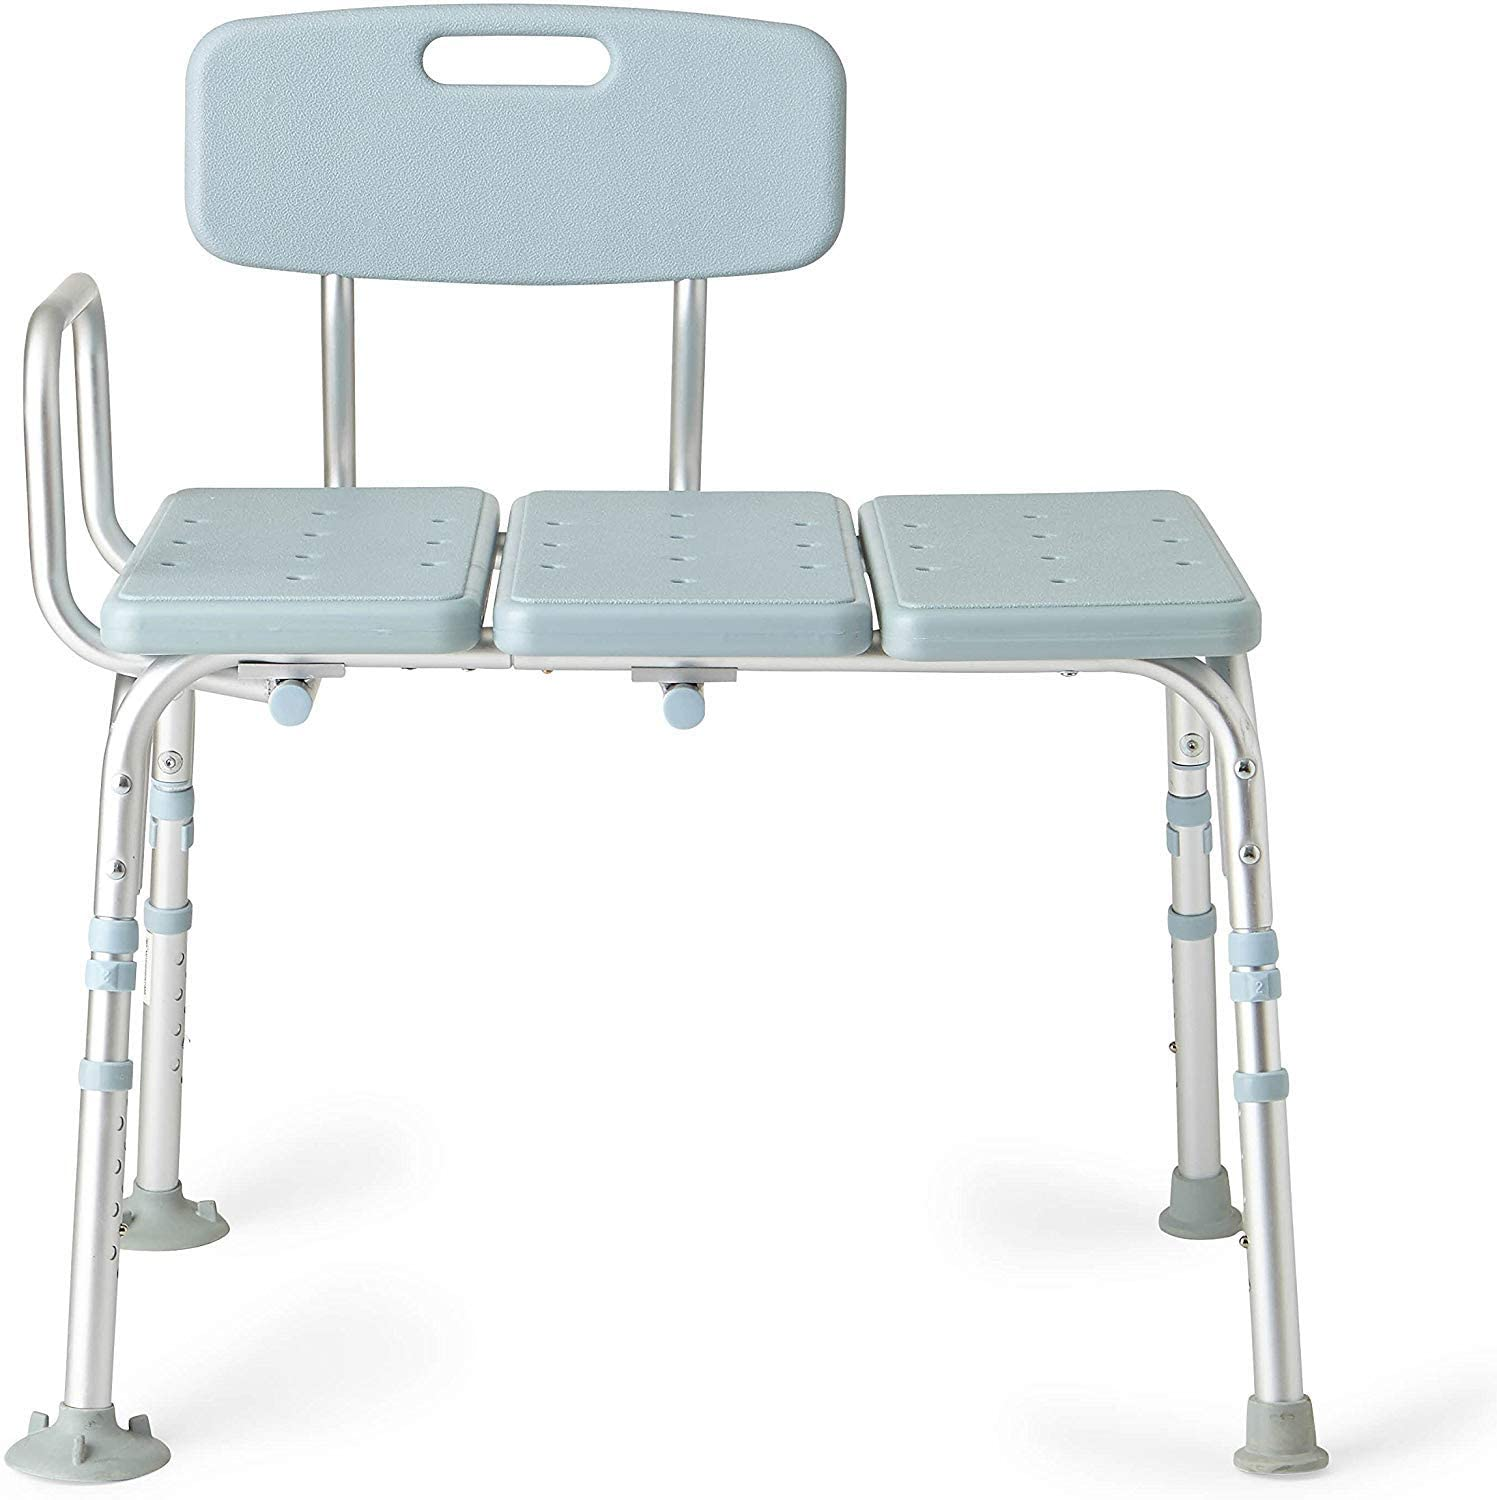 Medline Tub Transfer Bench With Microban Antimicrobial Protection, for Use as A Shower Bench or Bath Seat, Blue: Health & Personal Care